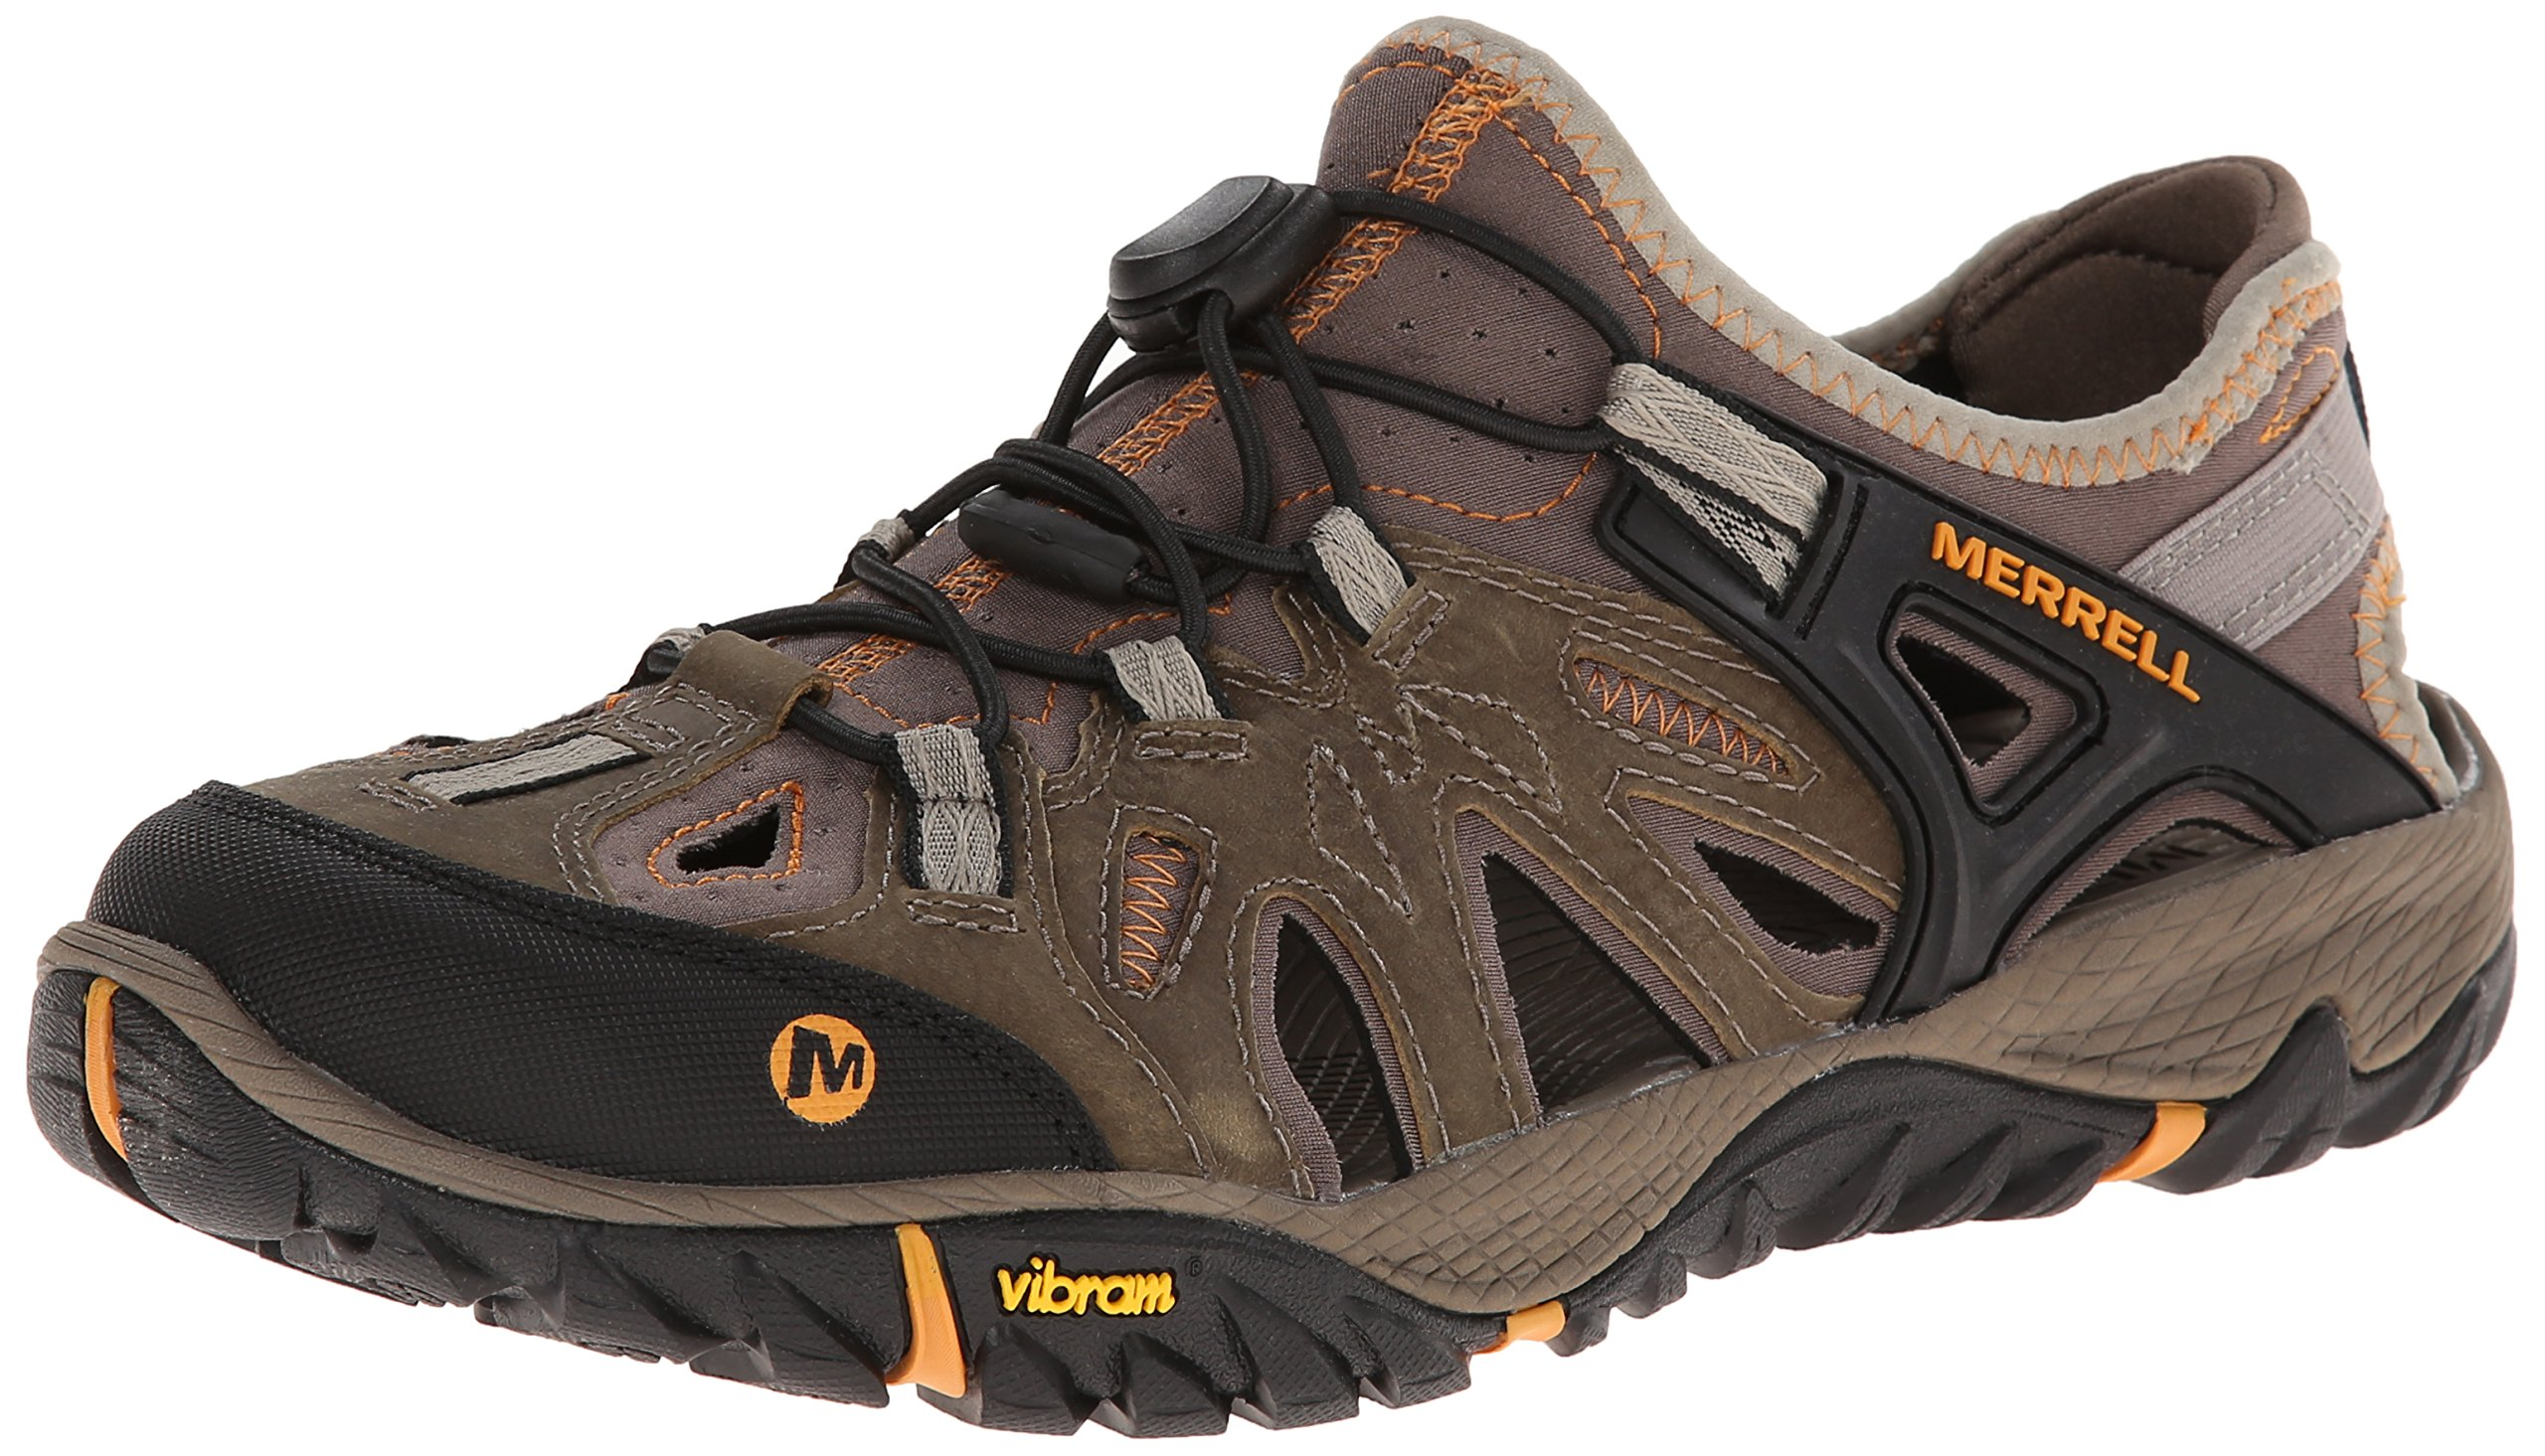 Merrell Men's All Out Blaze Sieve Water Shoe, Brindle/Butterscotch, 10 M US